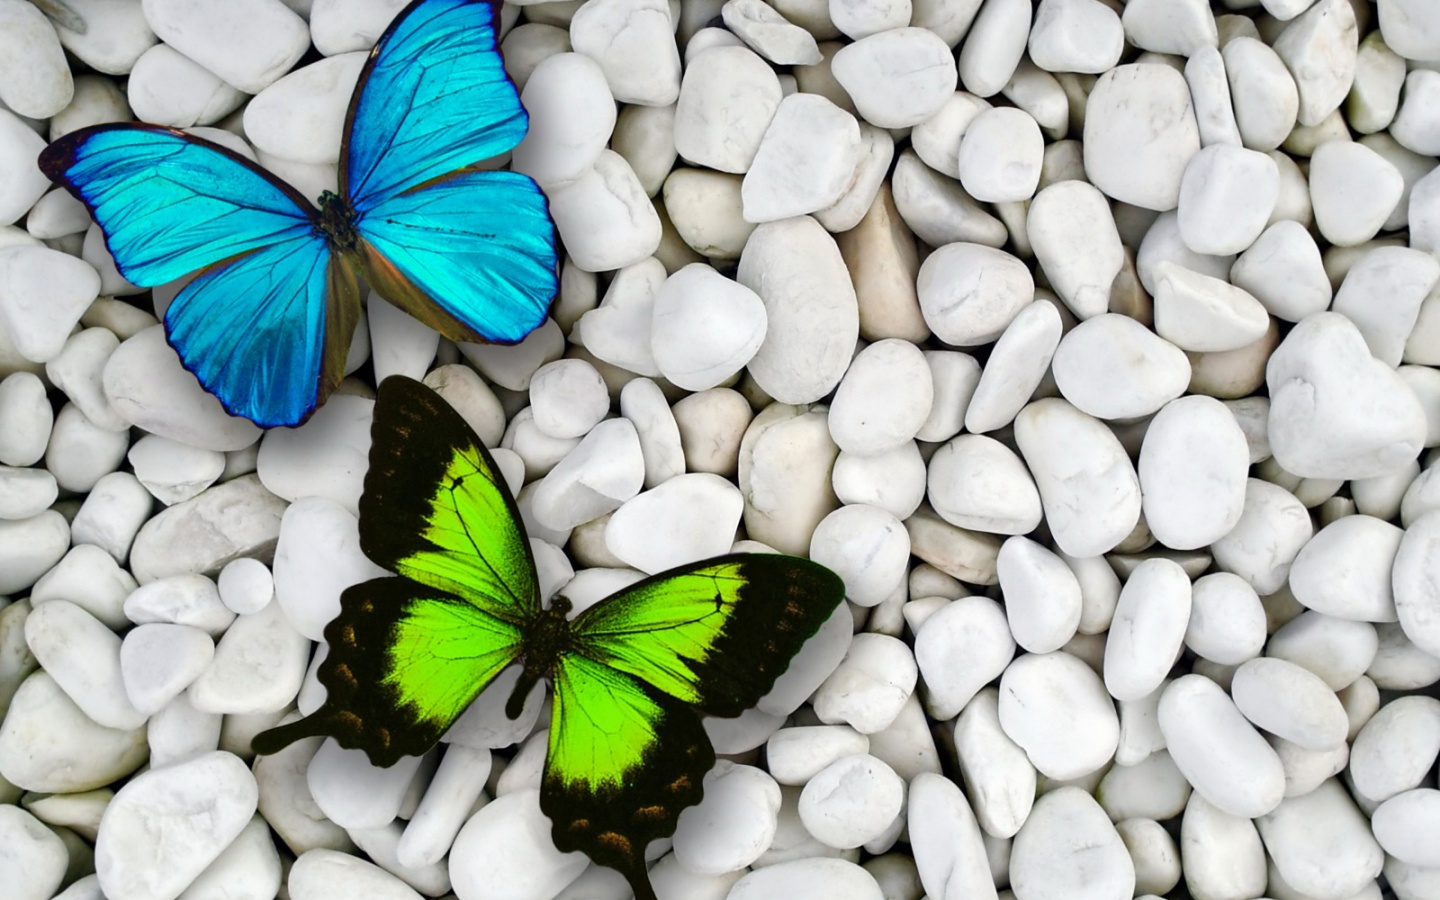 1440x900 Blue amp; Green Butterfly desktop PC and Mac wallpaper